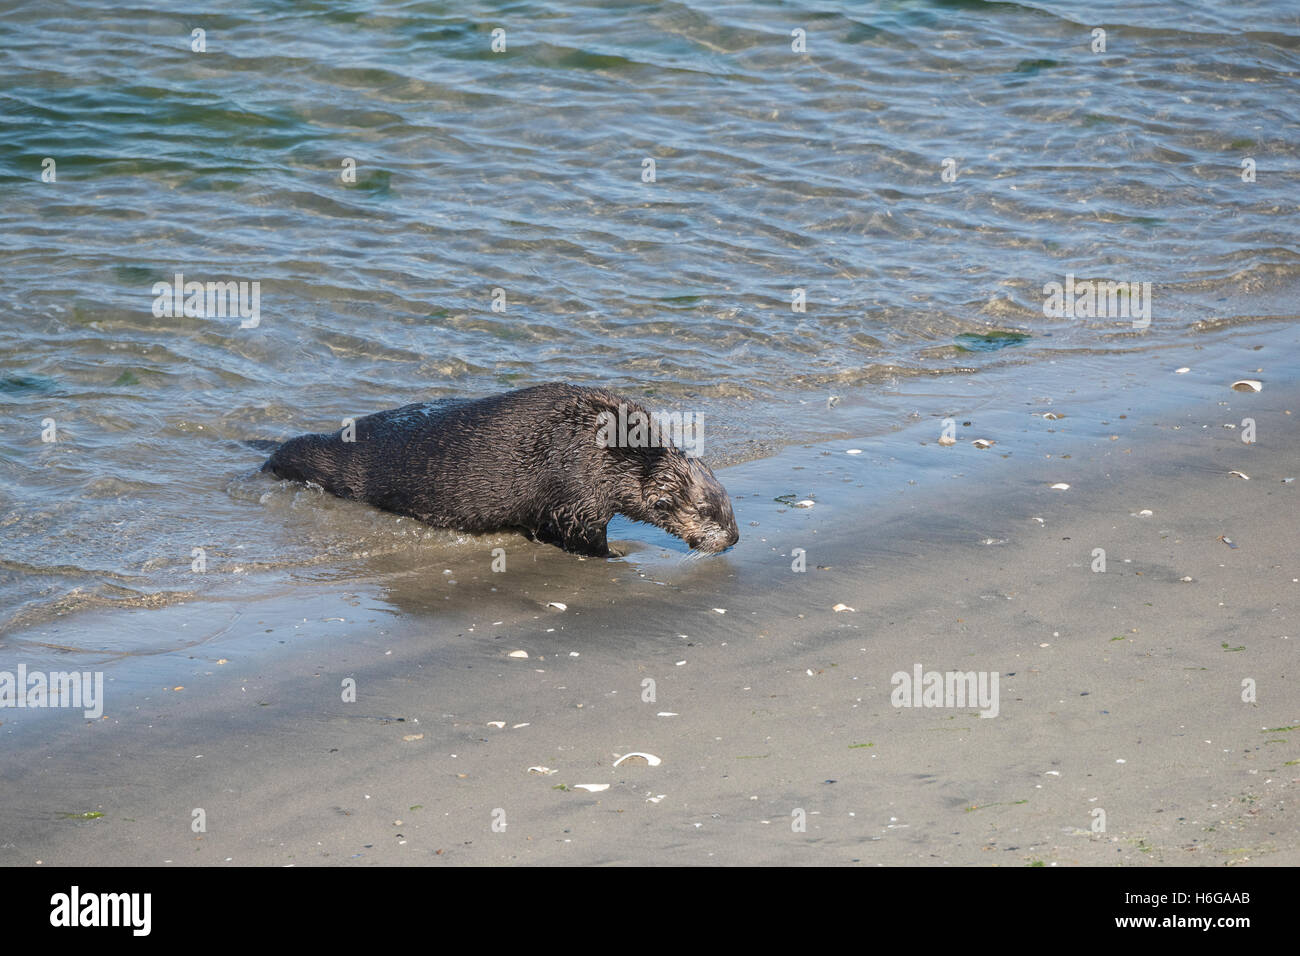 southern sea otter, Enhydra lutris nereis, comes ashore to bask on the beach at Moss Landing, California, USA - Stock Image